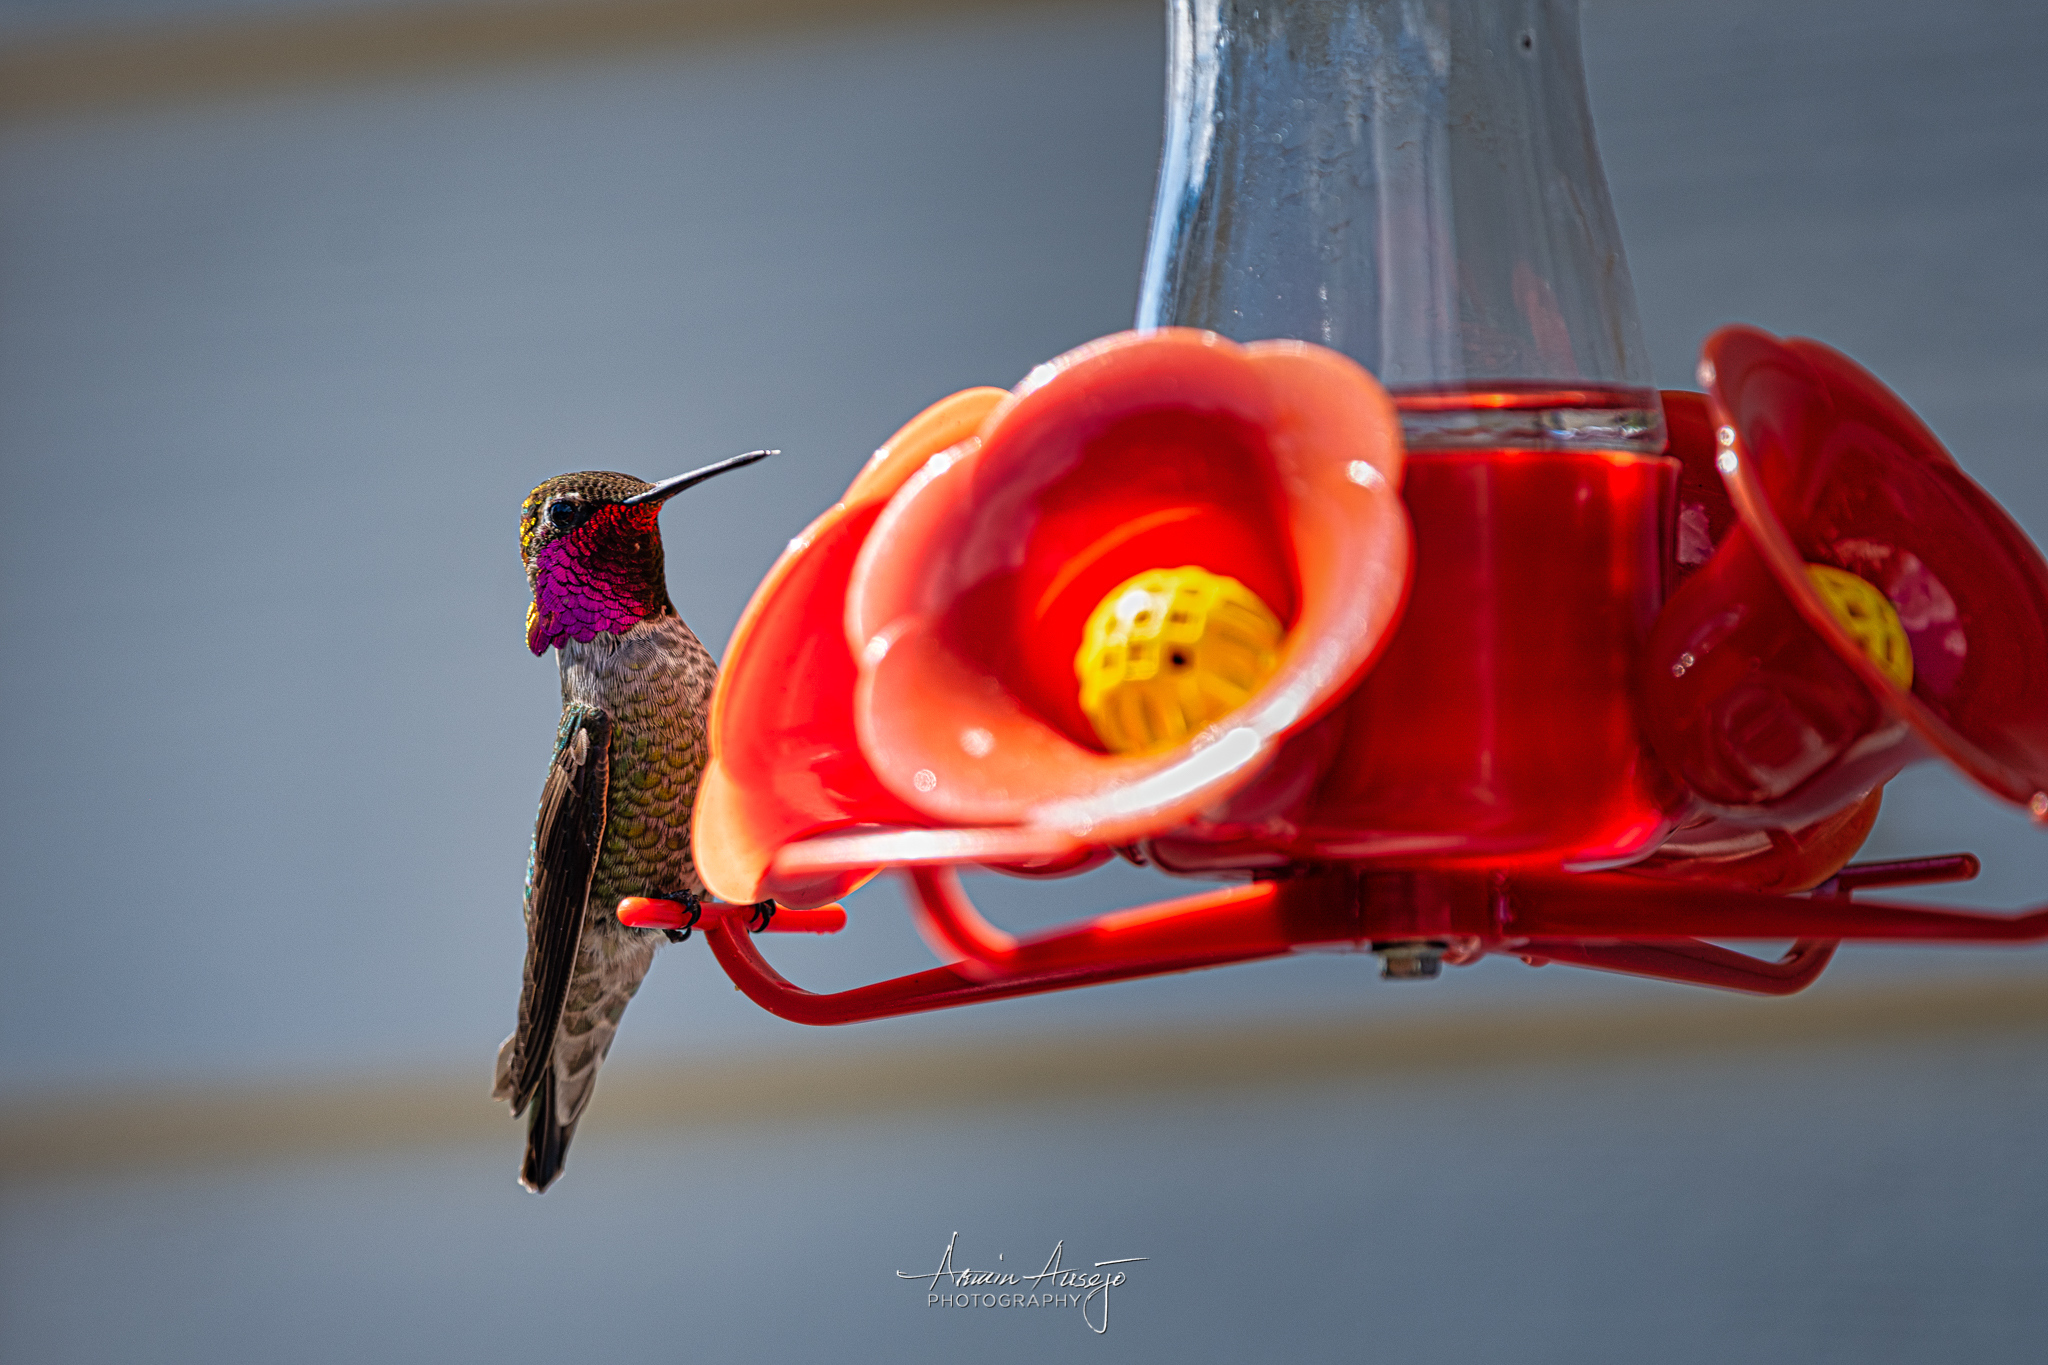 Hummingbird with the Nikkor 300mm f/4E PF ED VR